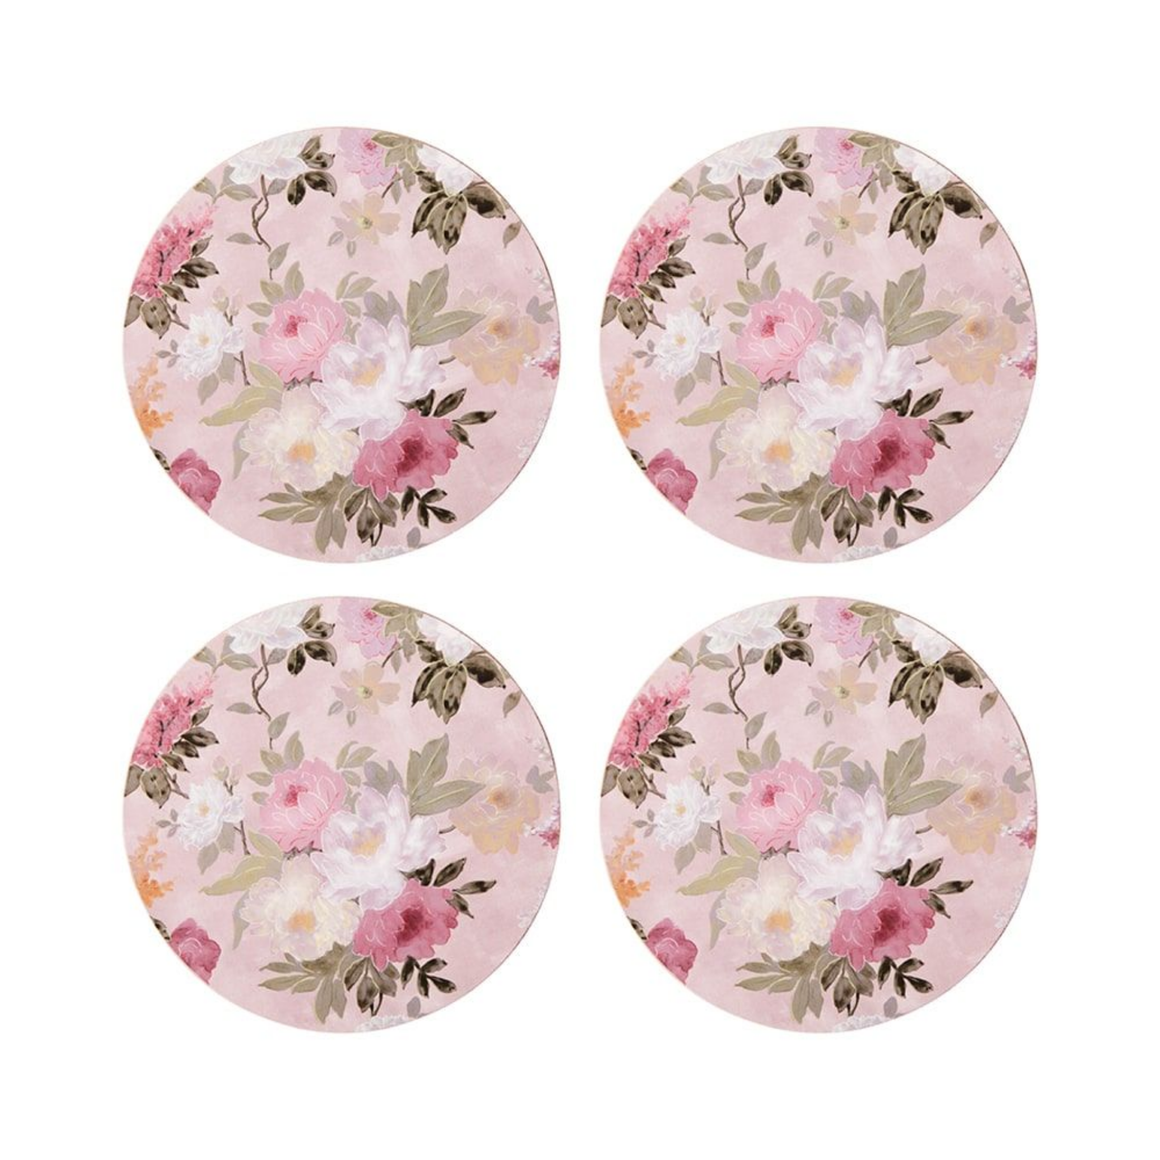 COASTERS - PINK FLORAL SET 4 - CORK BACKING